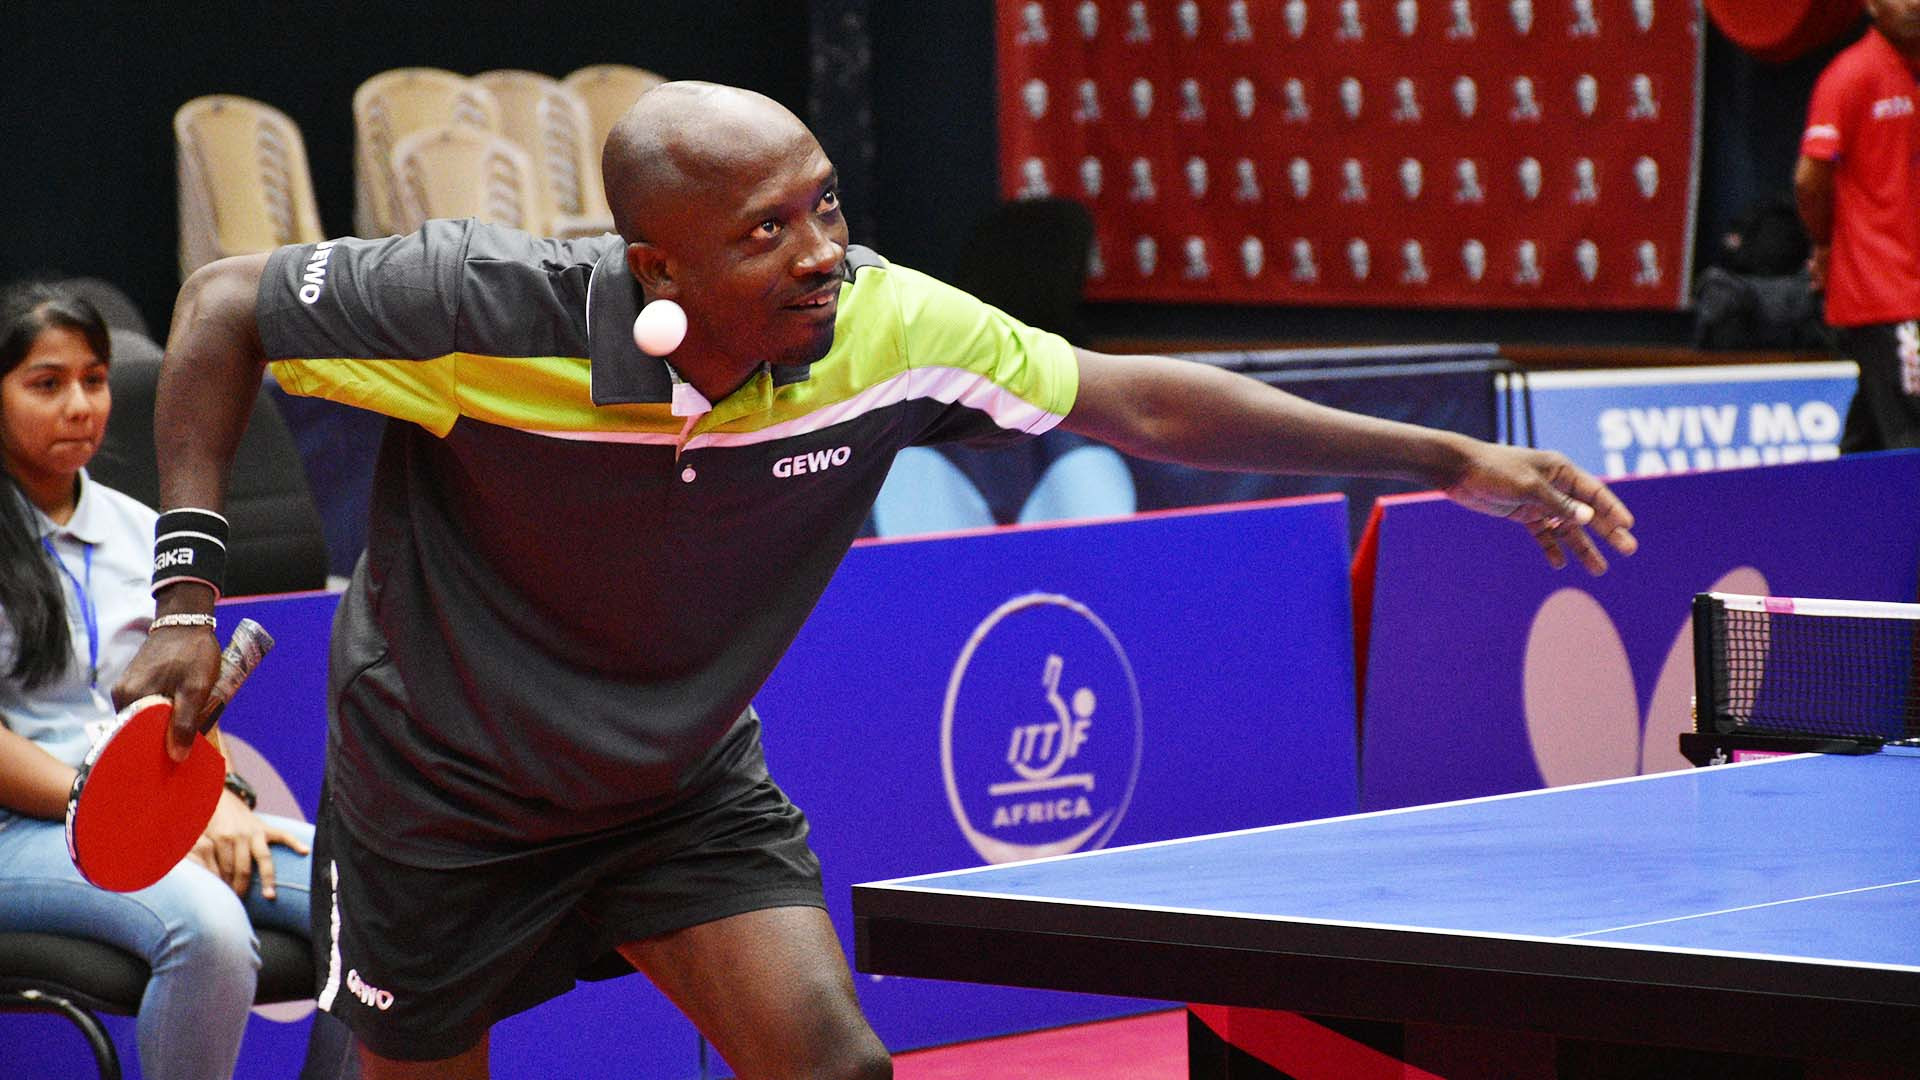 Nigeria and Egypt to clash for gold in men's and women's team events at African Table Tennis Championships